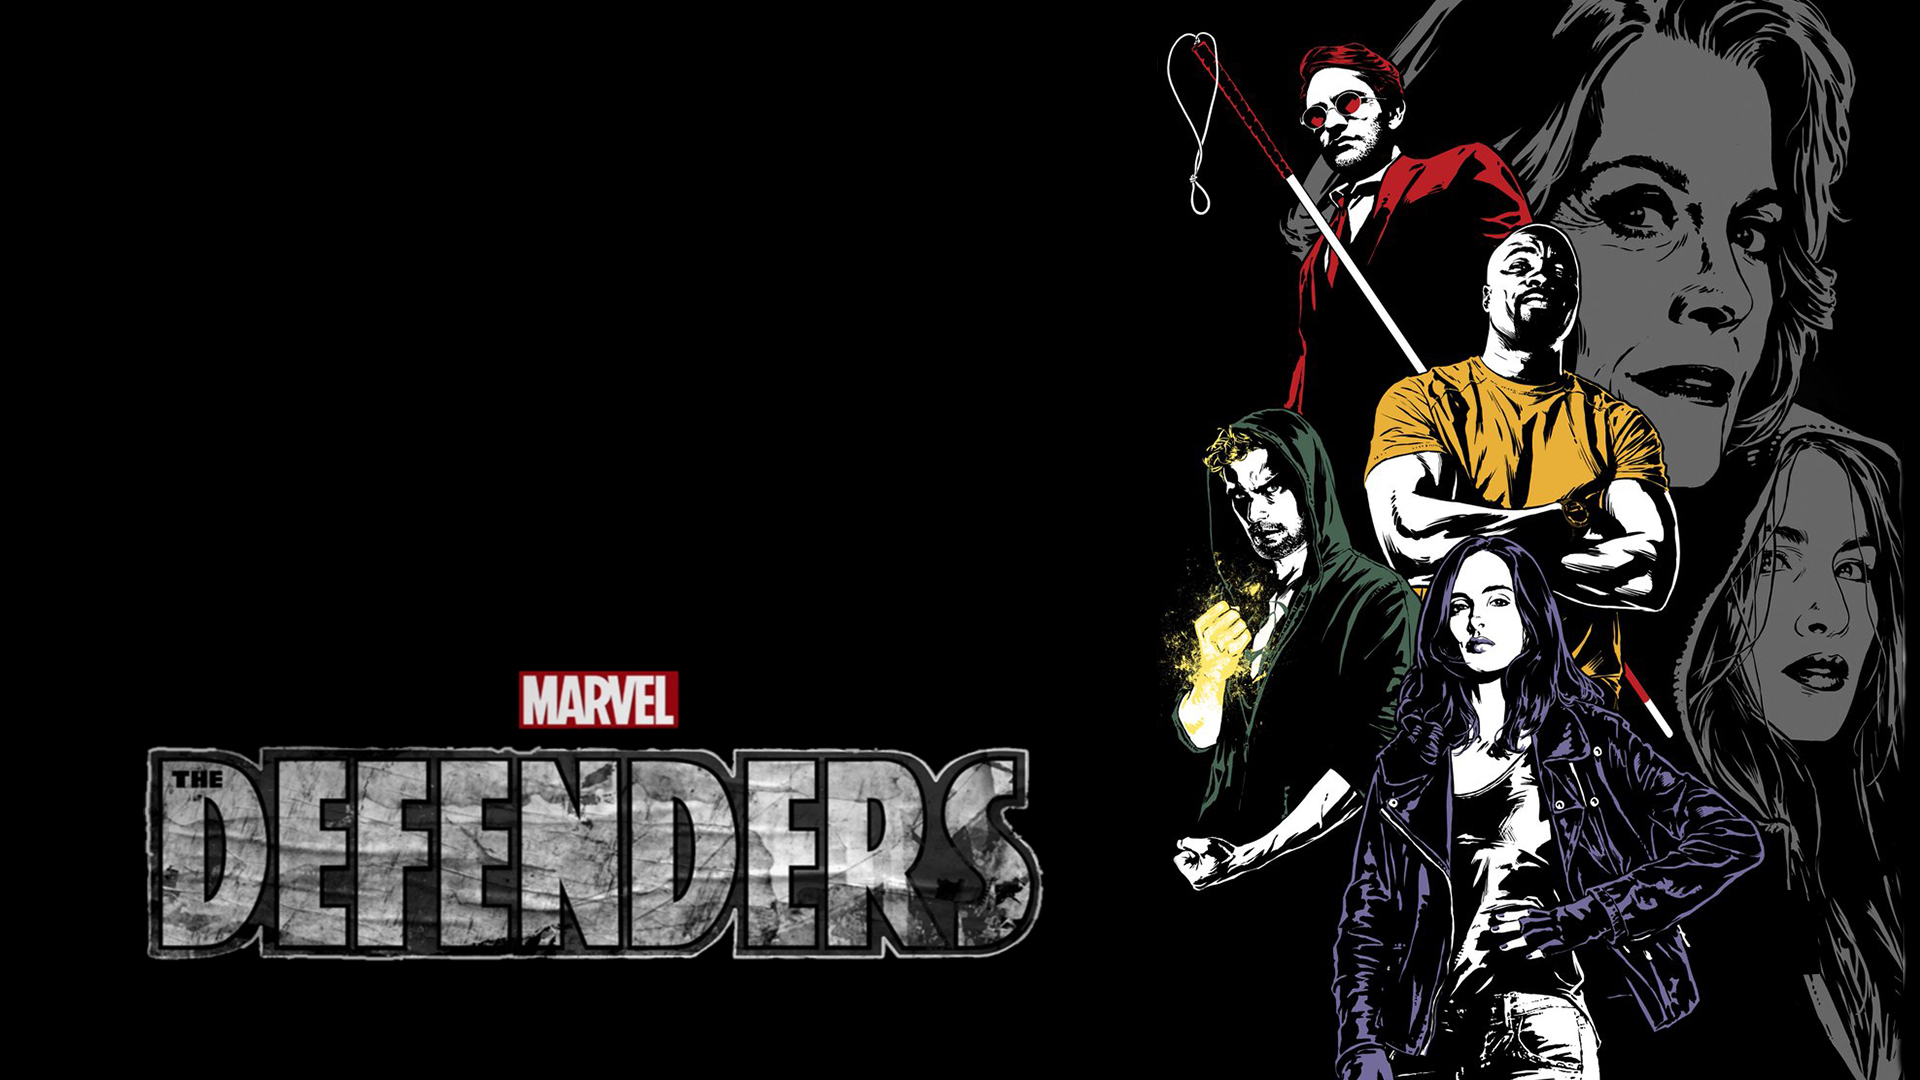 Marvel's The Defenders wallpaper by The-Dark-Mamba-995 on